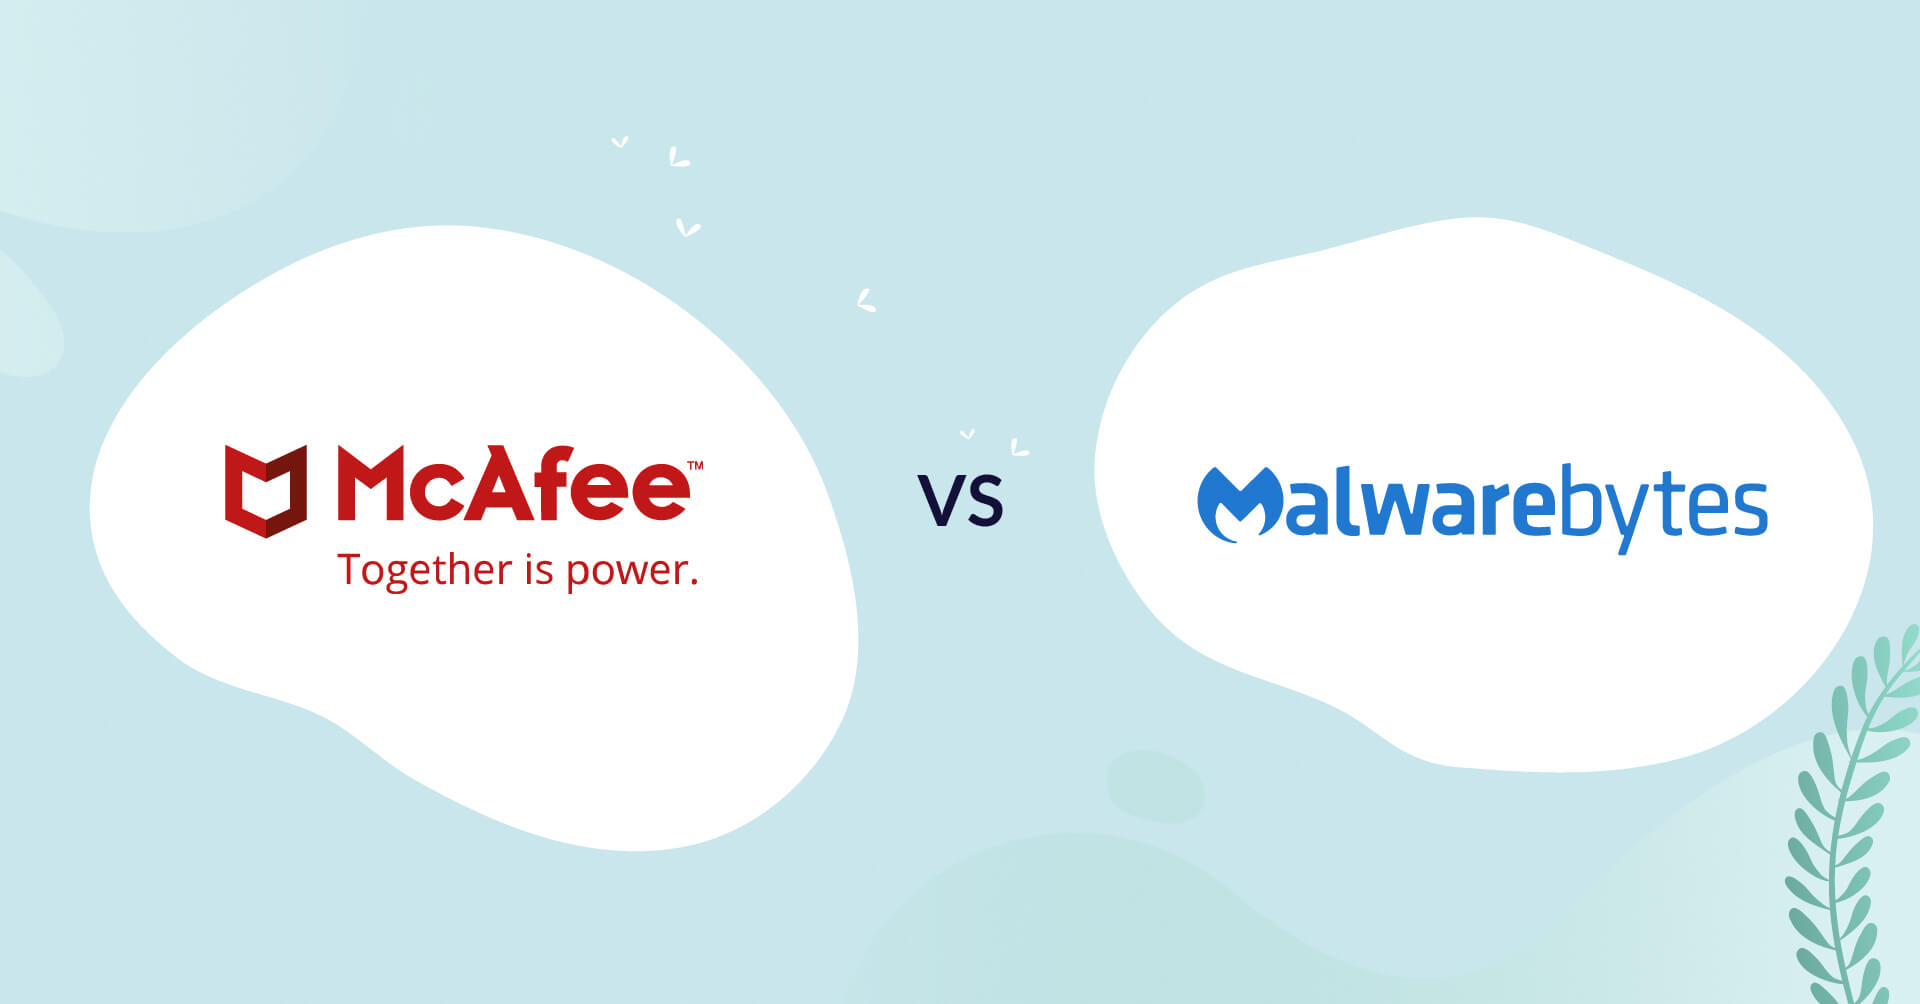 mcafee logo vs malwarebytes logo antivirus comparison header for how to choose article